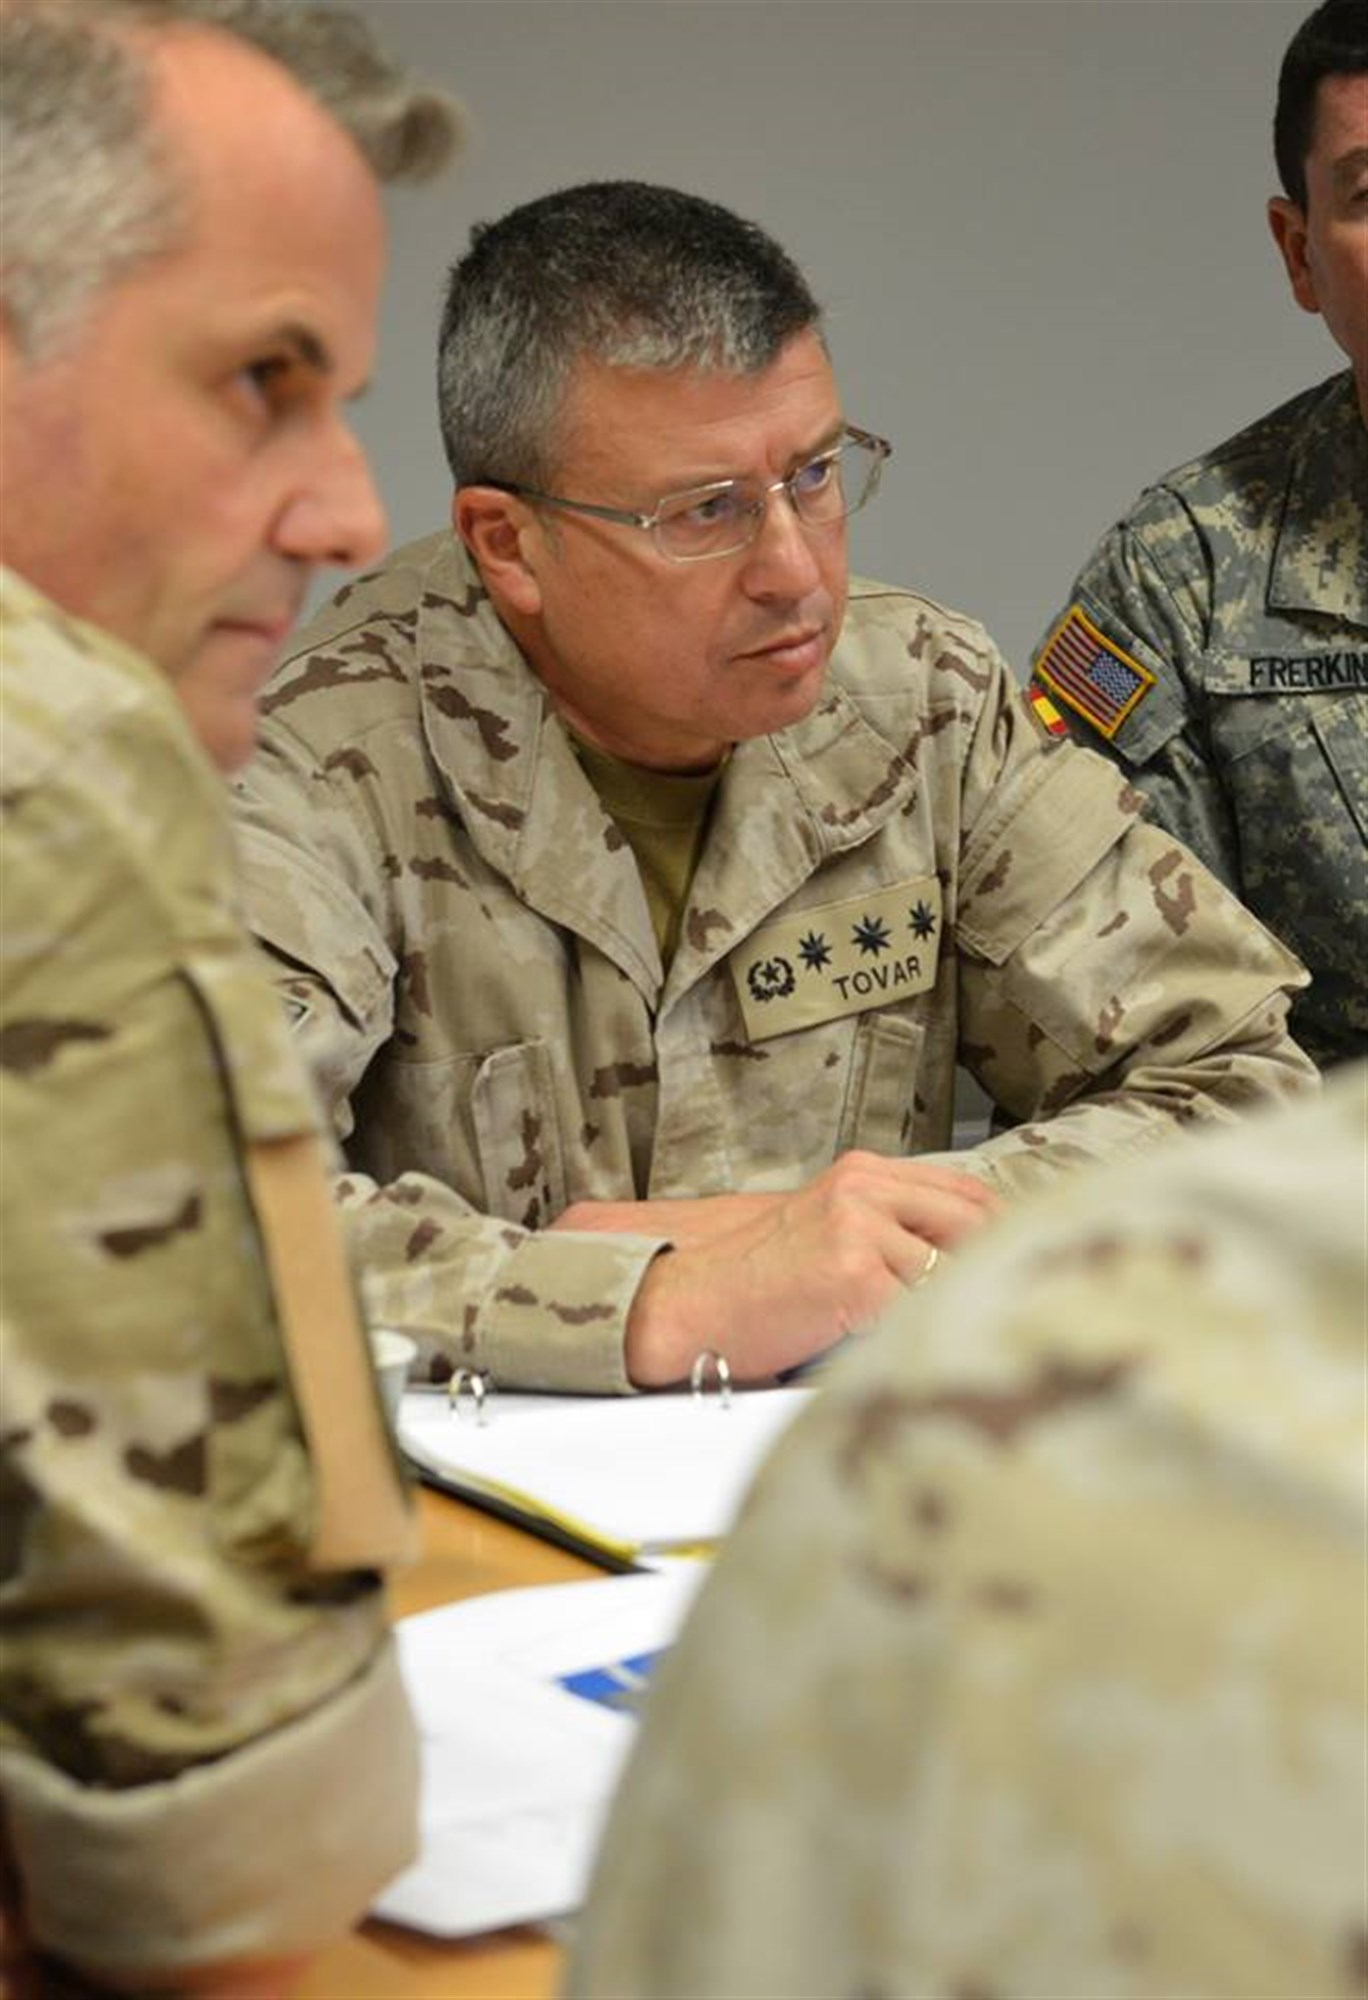 Col. Enrique Tovar, chief of plans for the Spanish Joint Operations Command, participates in a discussion at the U.S. Africa Command Multinational Cooperation Center in Stuttgart, Germany, Dec. 2, 2015.